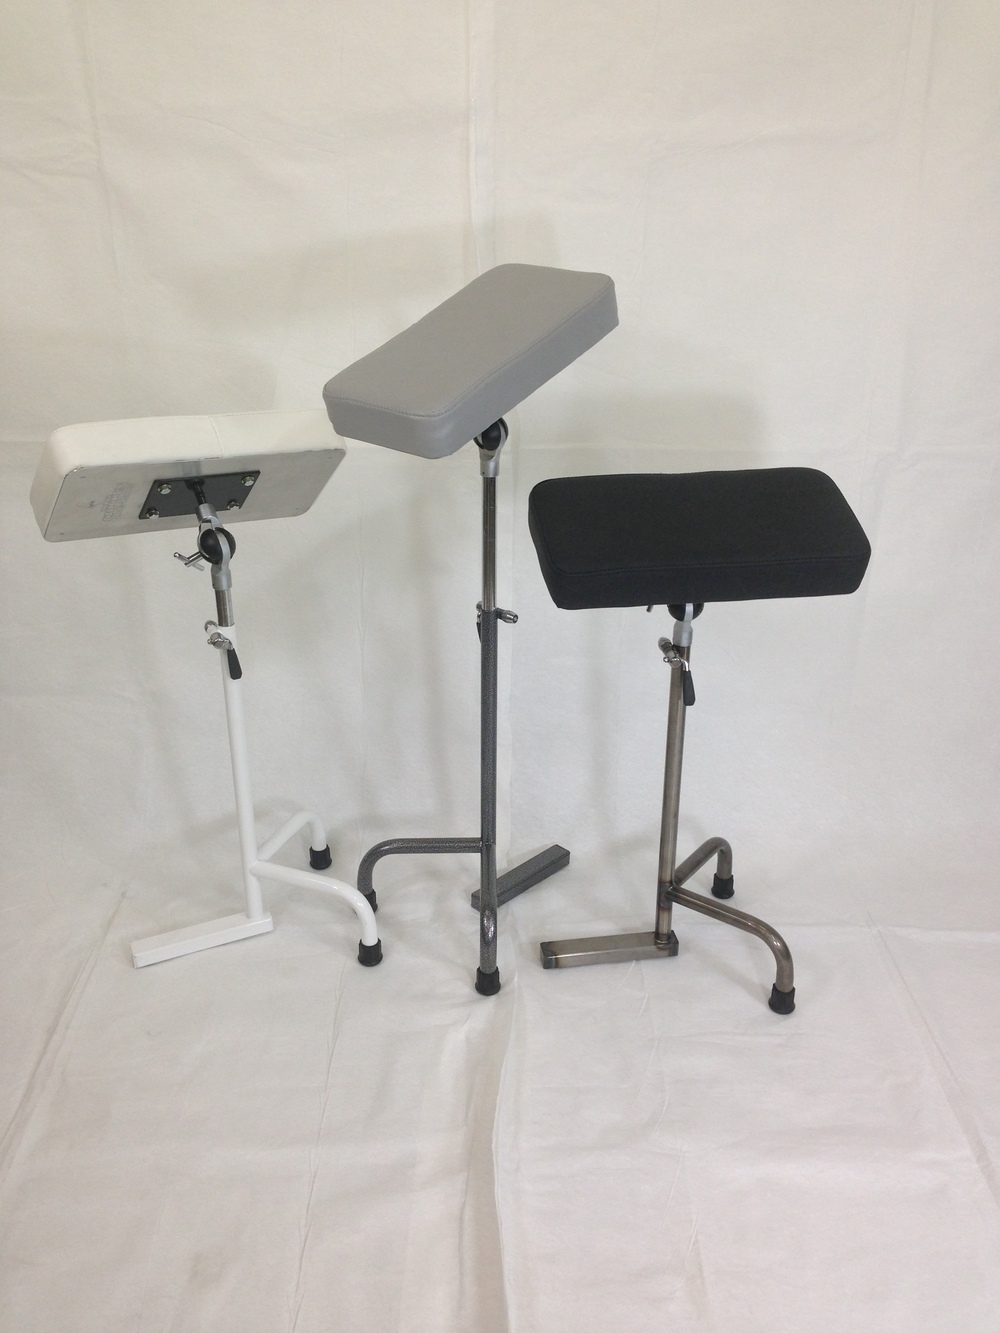 We have tattoo stands ready to ship to you today